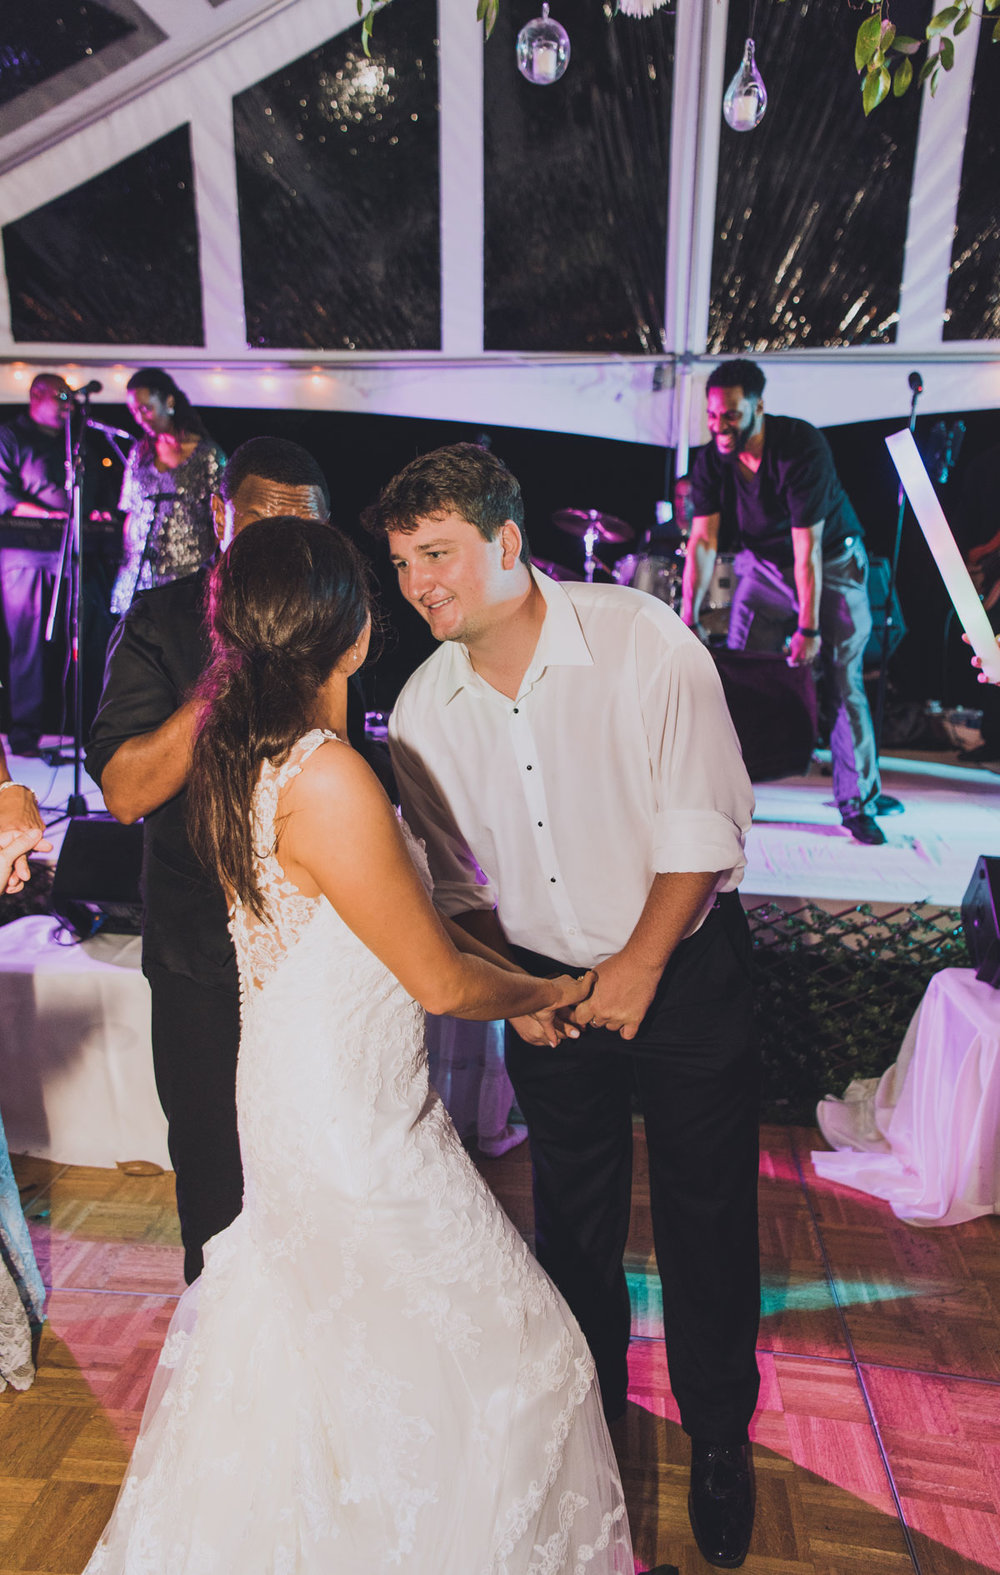 Dance Floor and Staging Rentals for Weddings